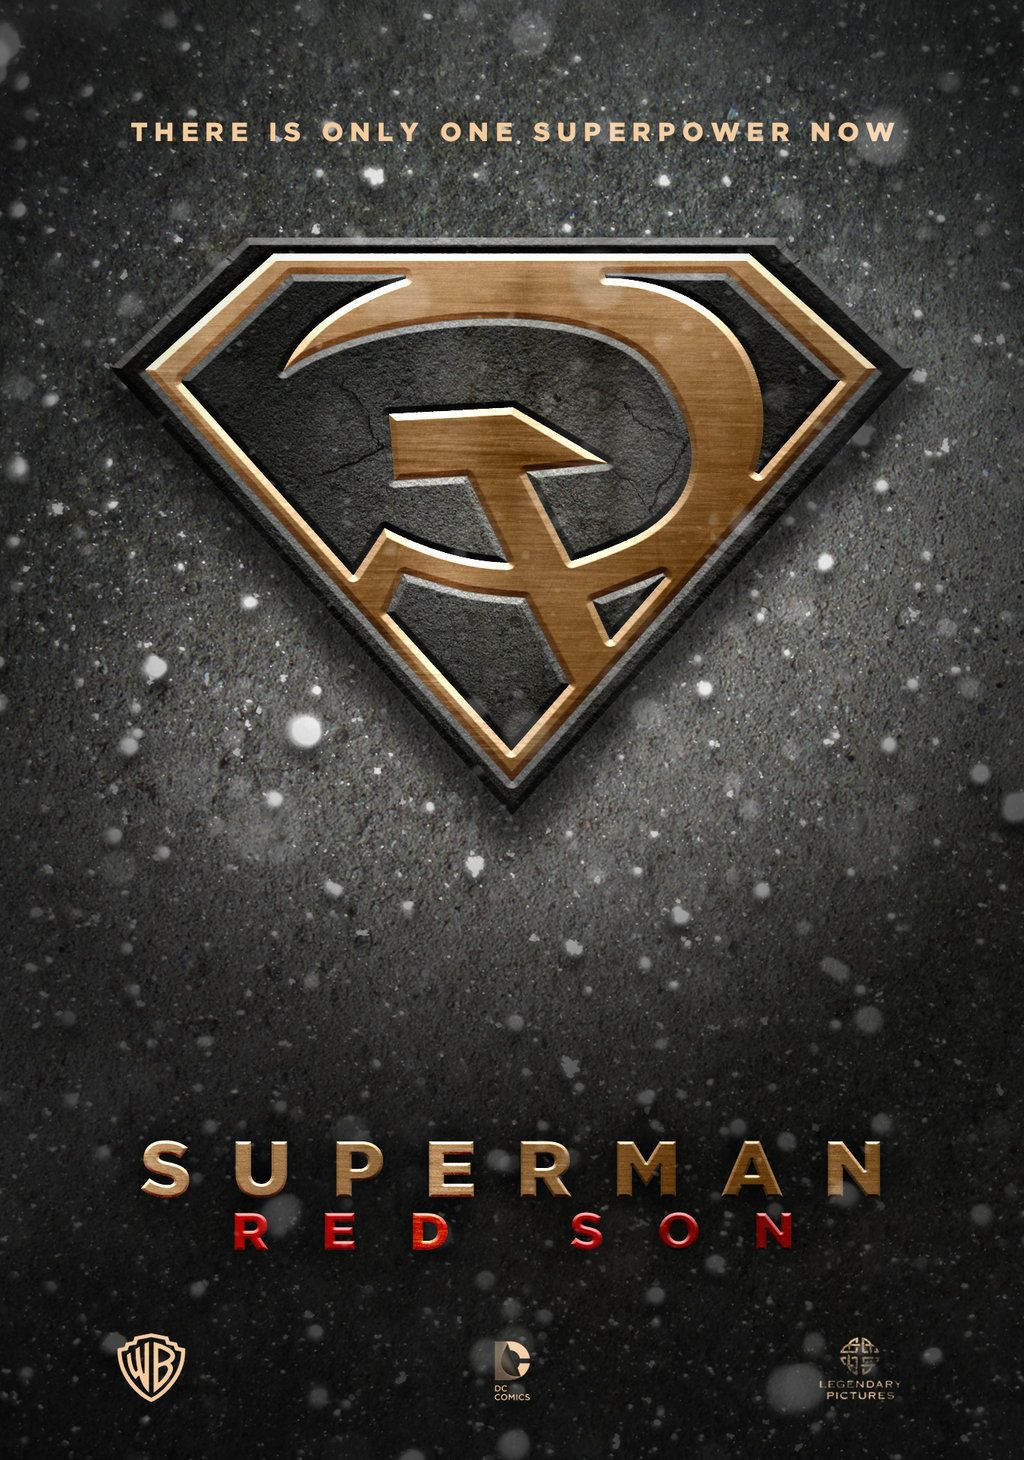 Superman Red Son Teaser Poster By Starzerodigital On Deviantart Superman Red Son Superman Superman Man Of Steel